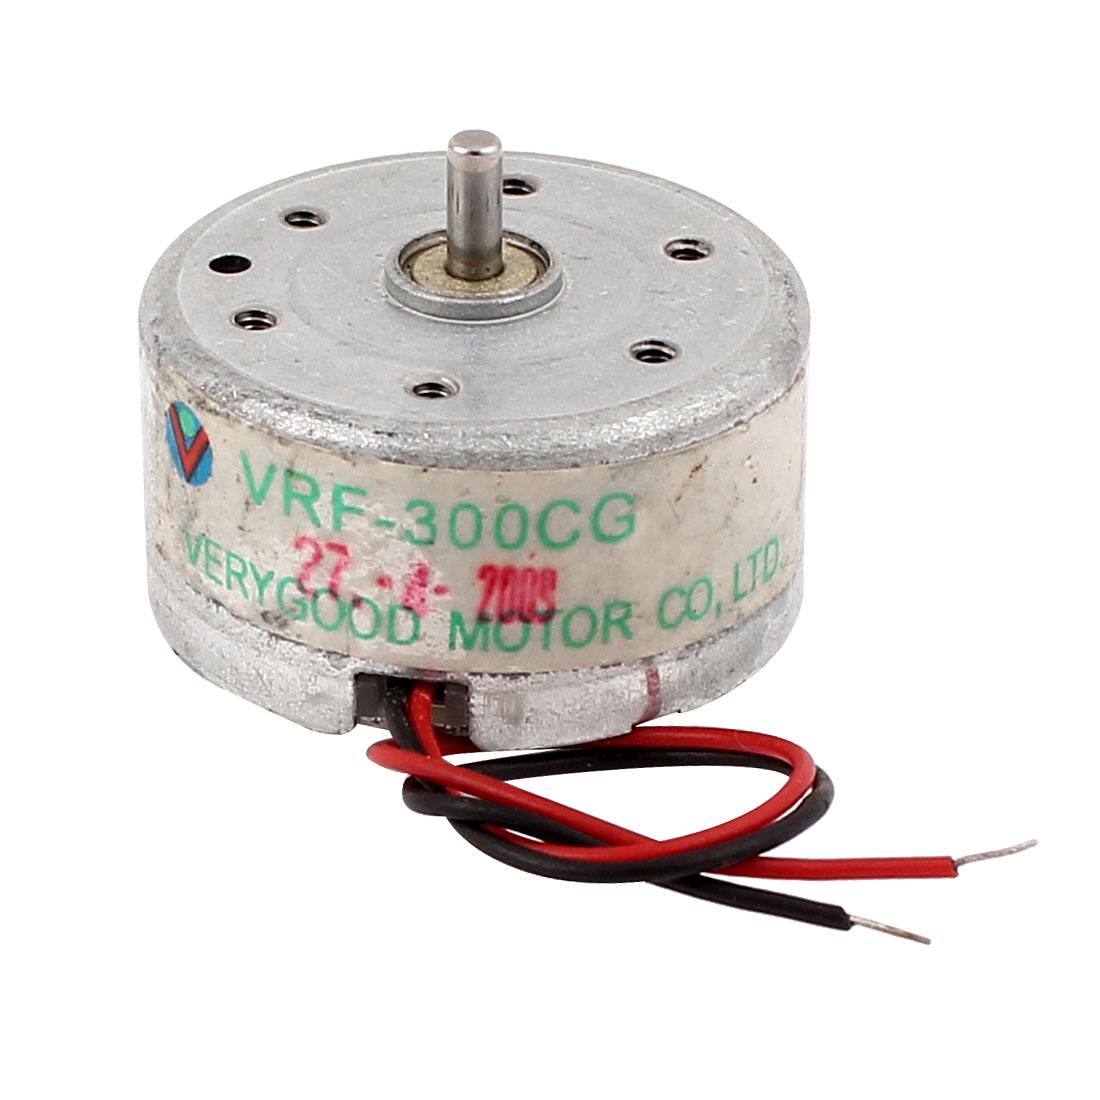 DC 3V 4700RPM High Torque Mini Electric Motor for RC Model